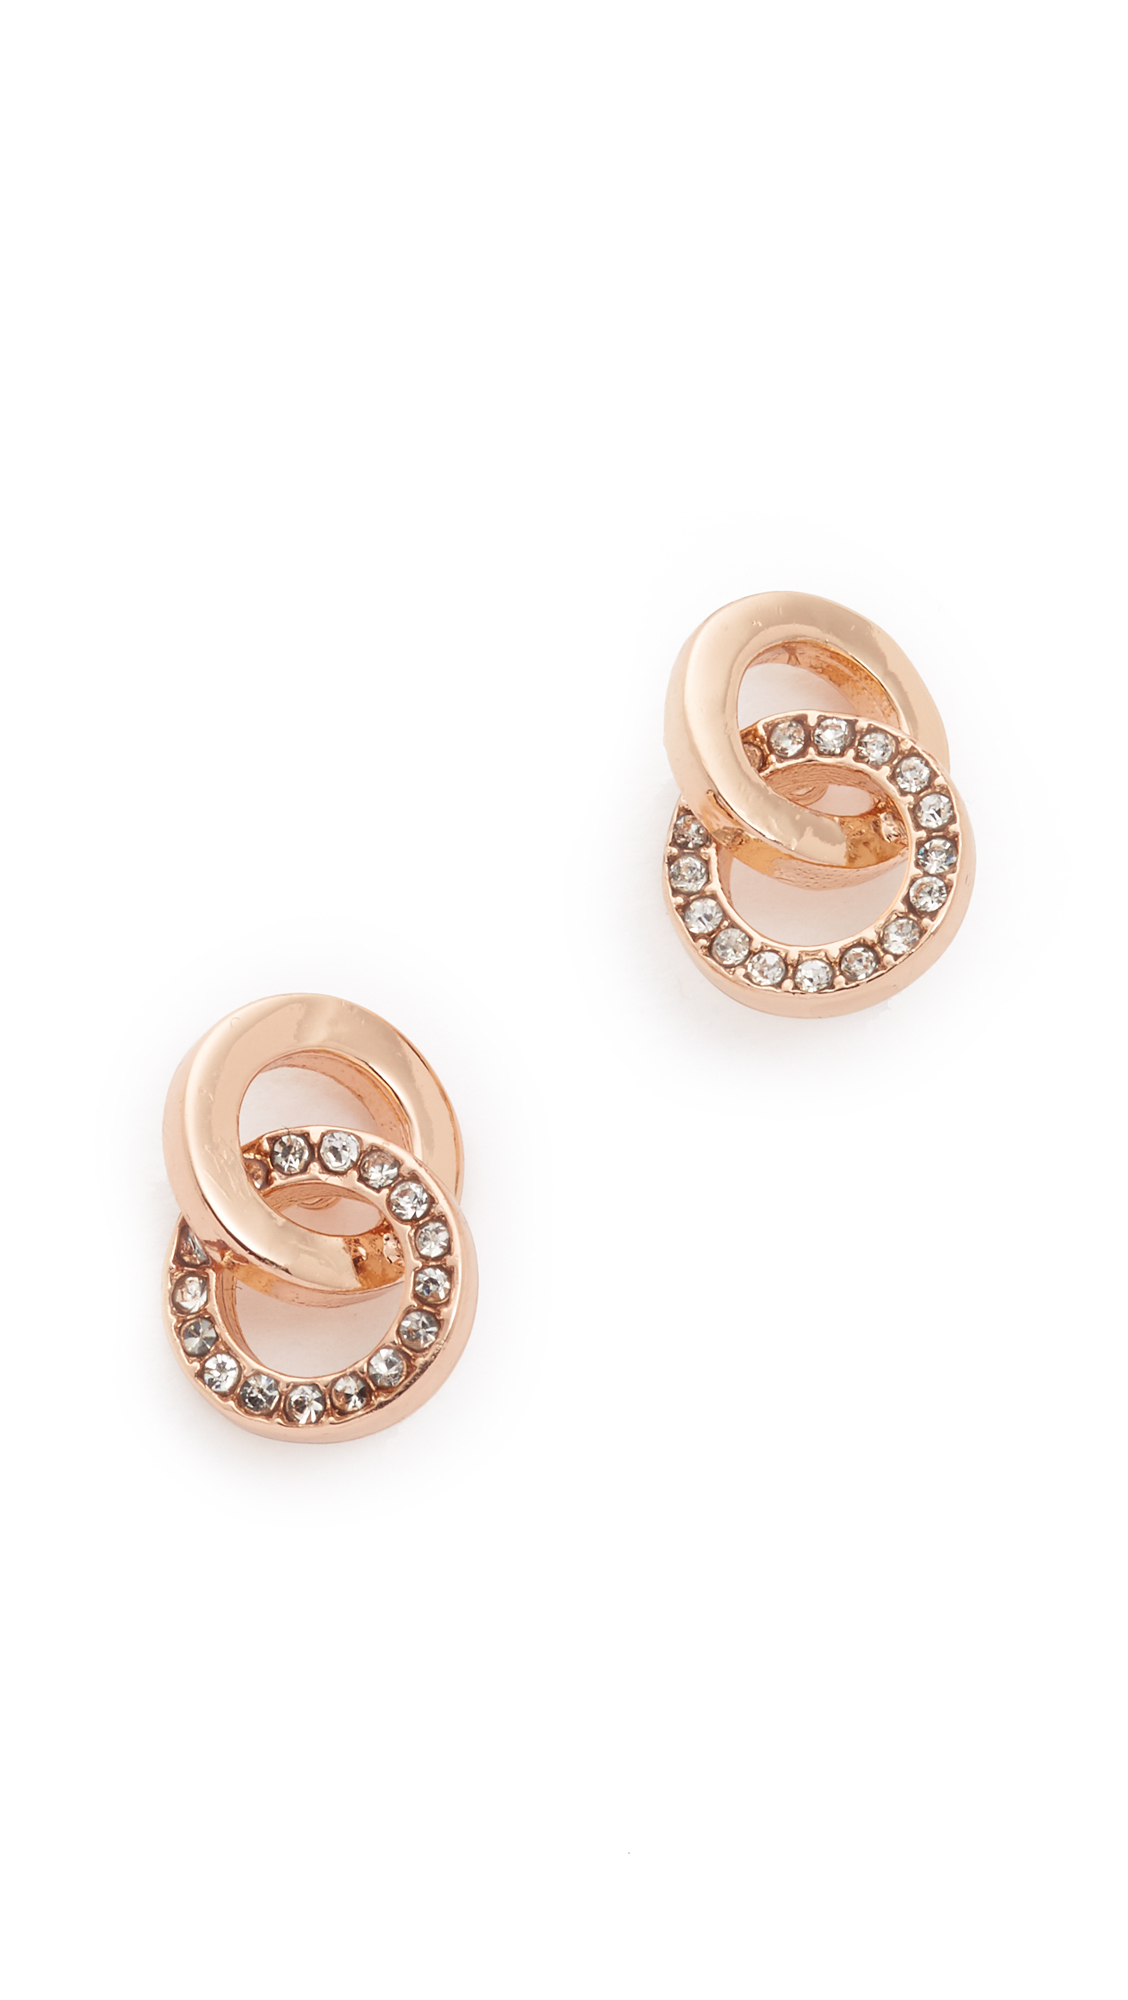 Kate Spade New York Sailor S Knot Stud Earrings At Luxury Zappos Source  · Gallery